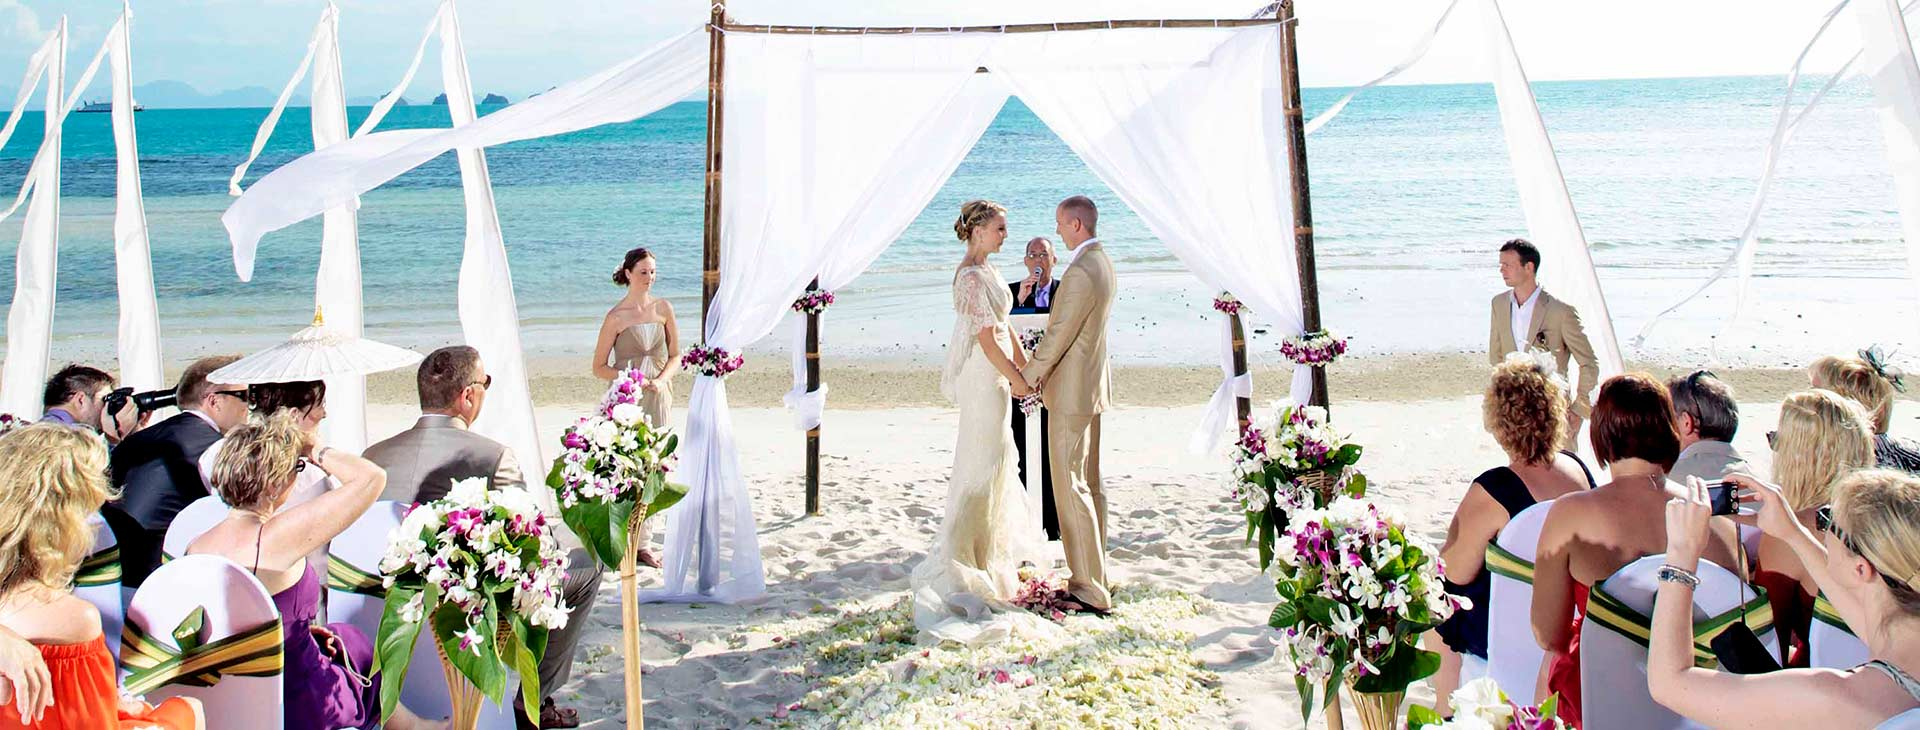 weddings in thailand koh samui phuket with professional planners